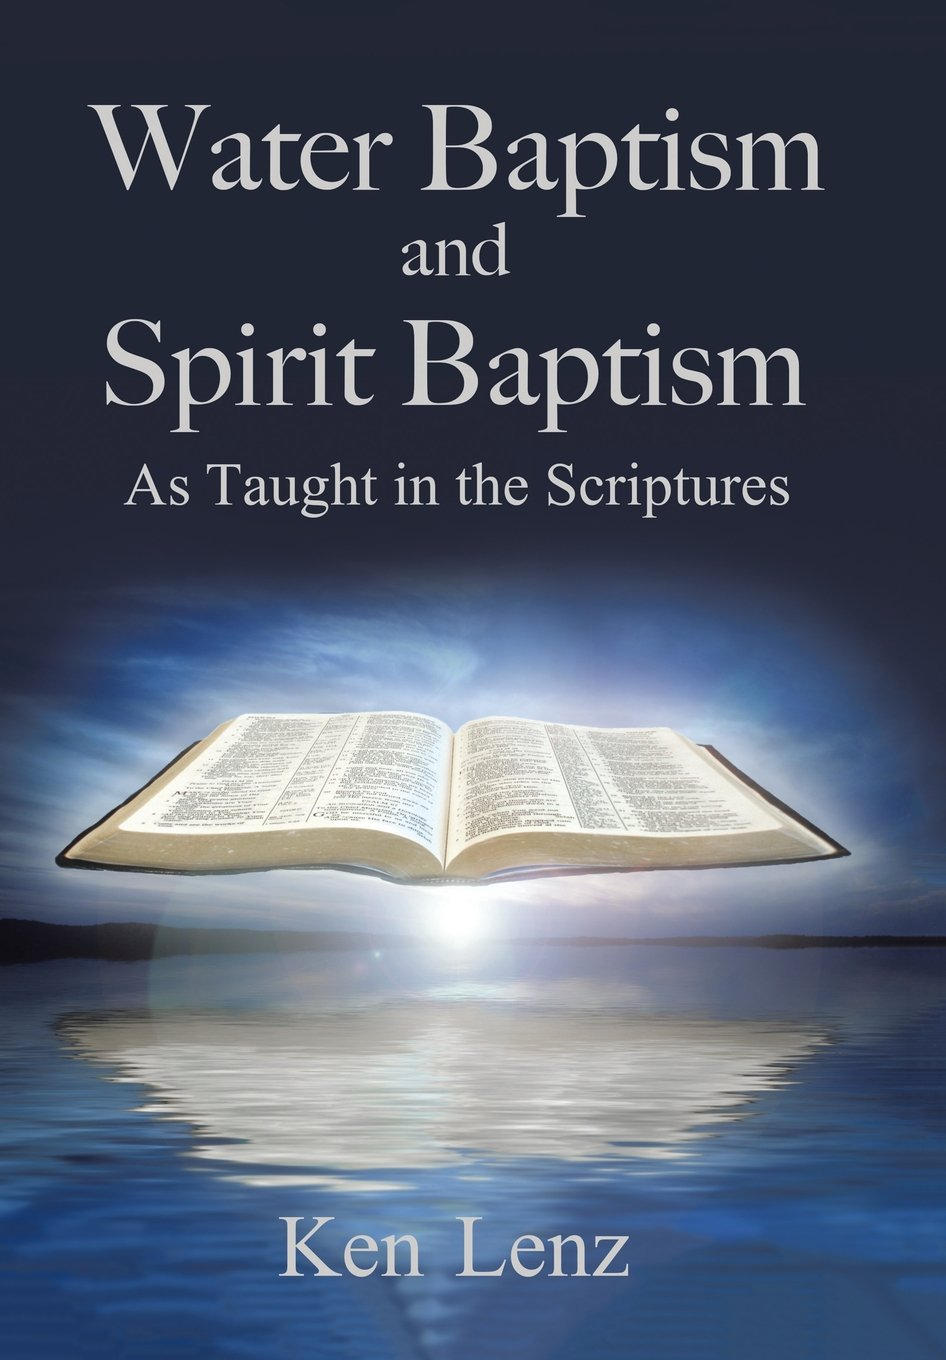 water baptism and spirit baptism as taught in the scriptures ken